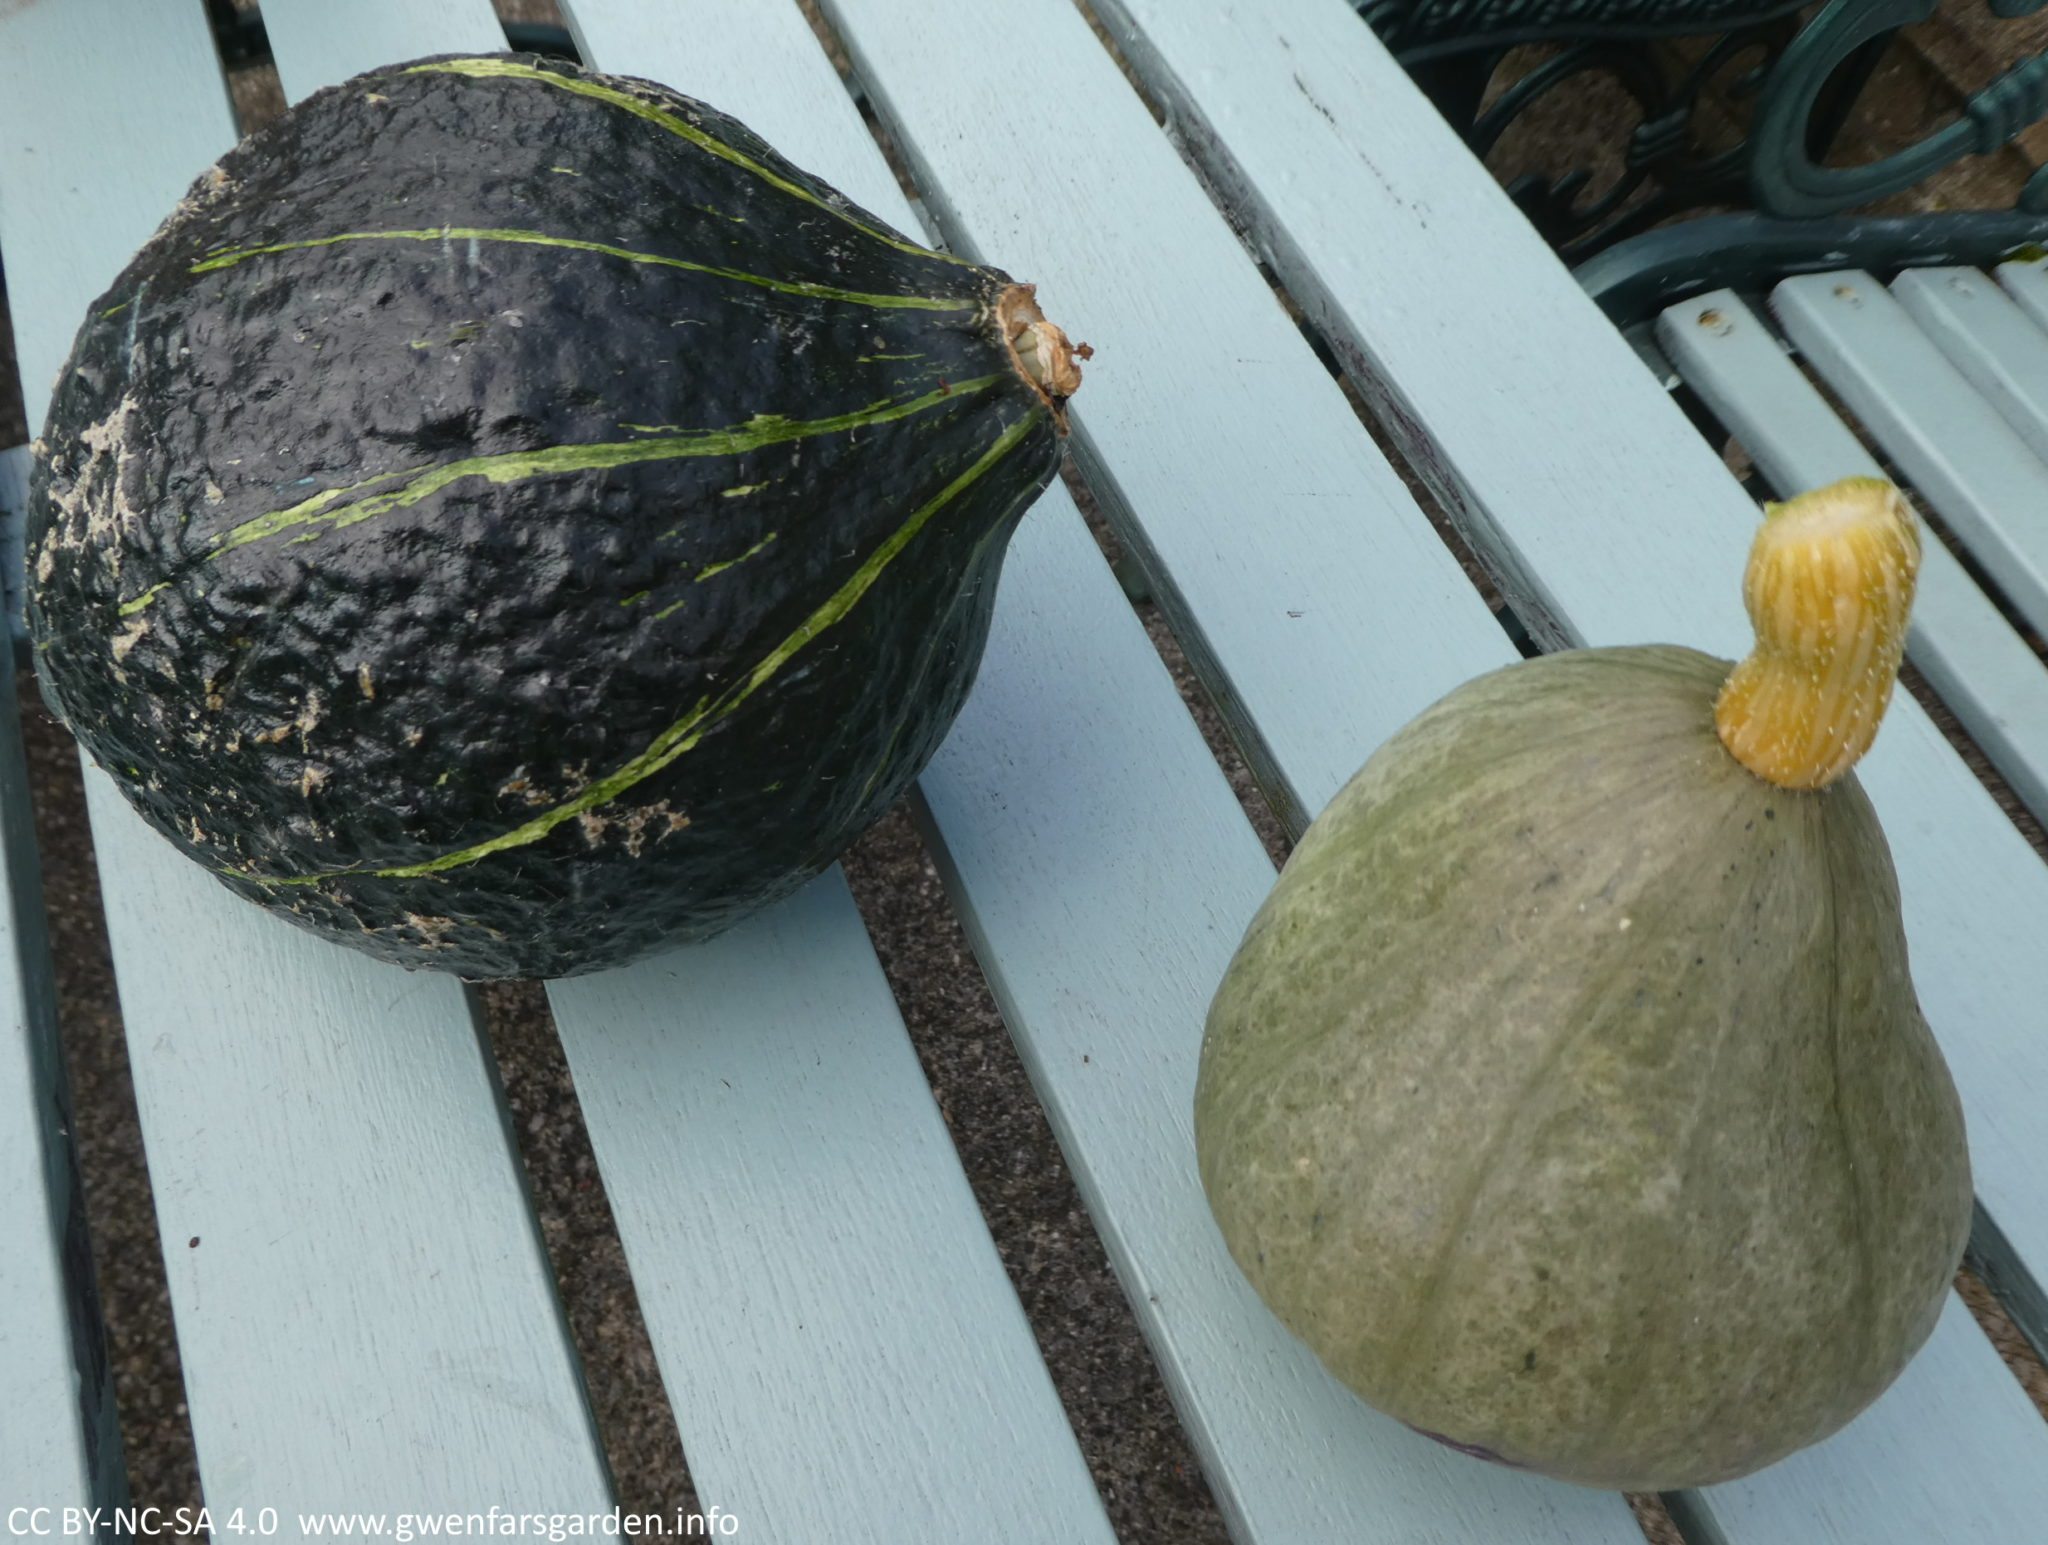 The medium and smaller sized pumpkins. On the left is the dark green one with light green stripes, and on the right is a small Kabocha light green one that would easily fit in your hand.